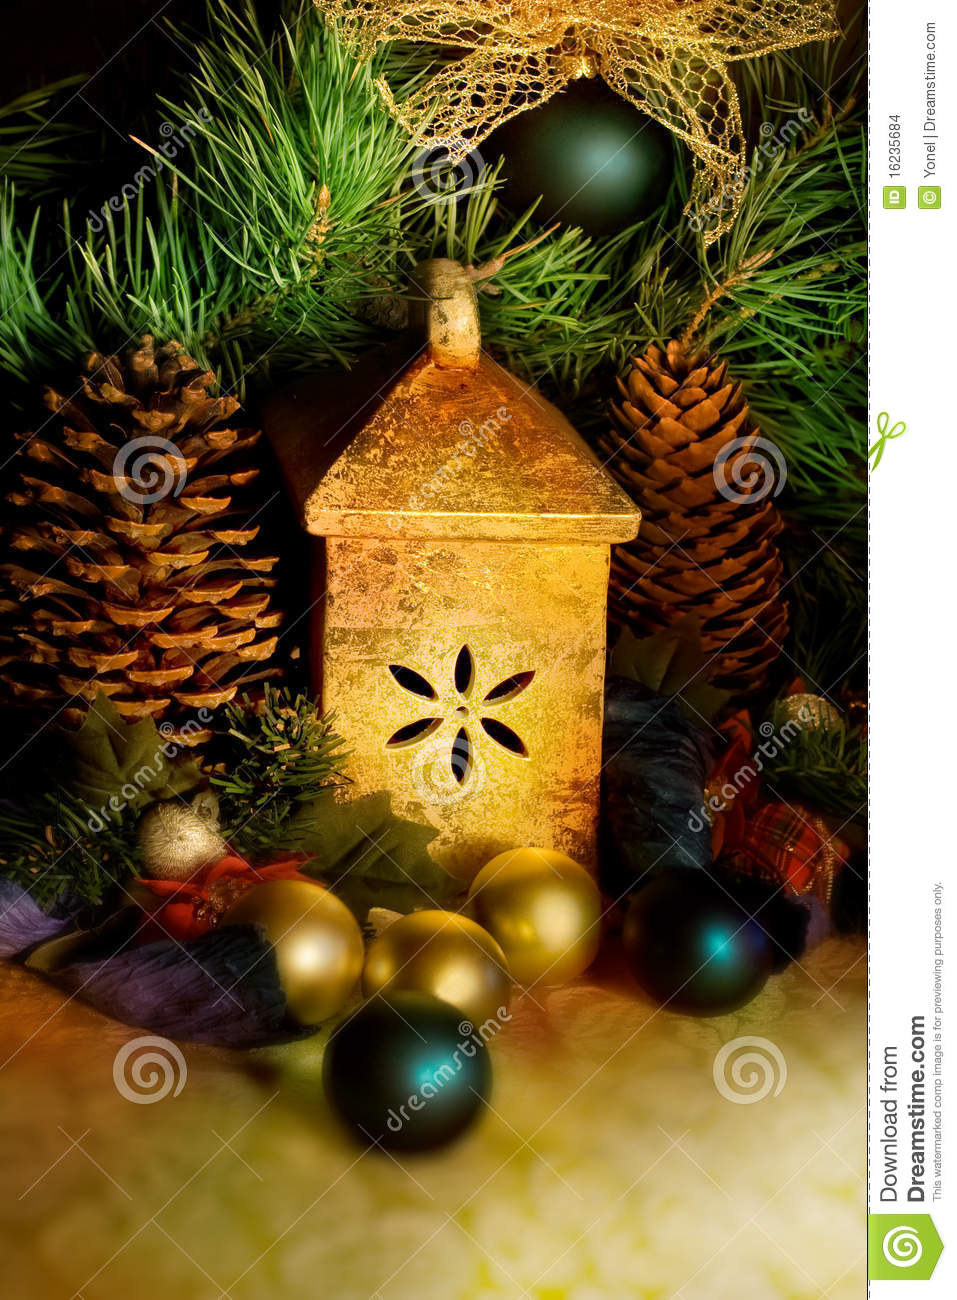 Christmas tree decorations still life stock images